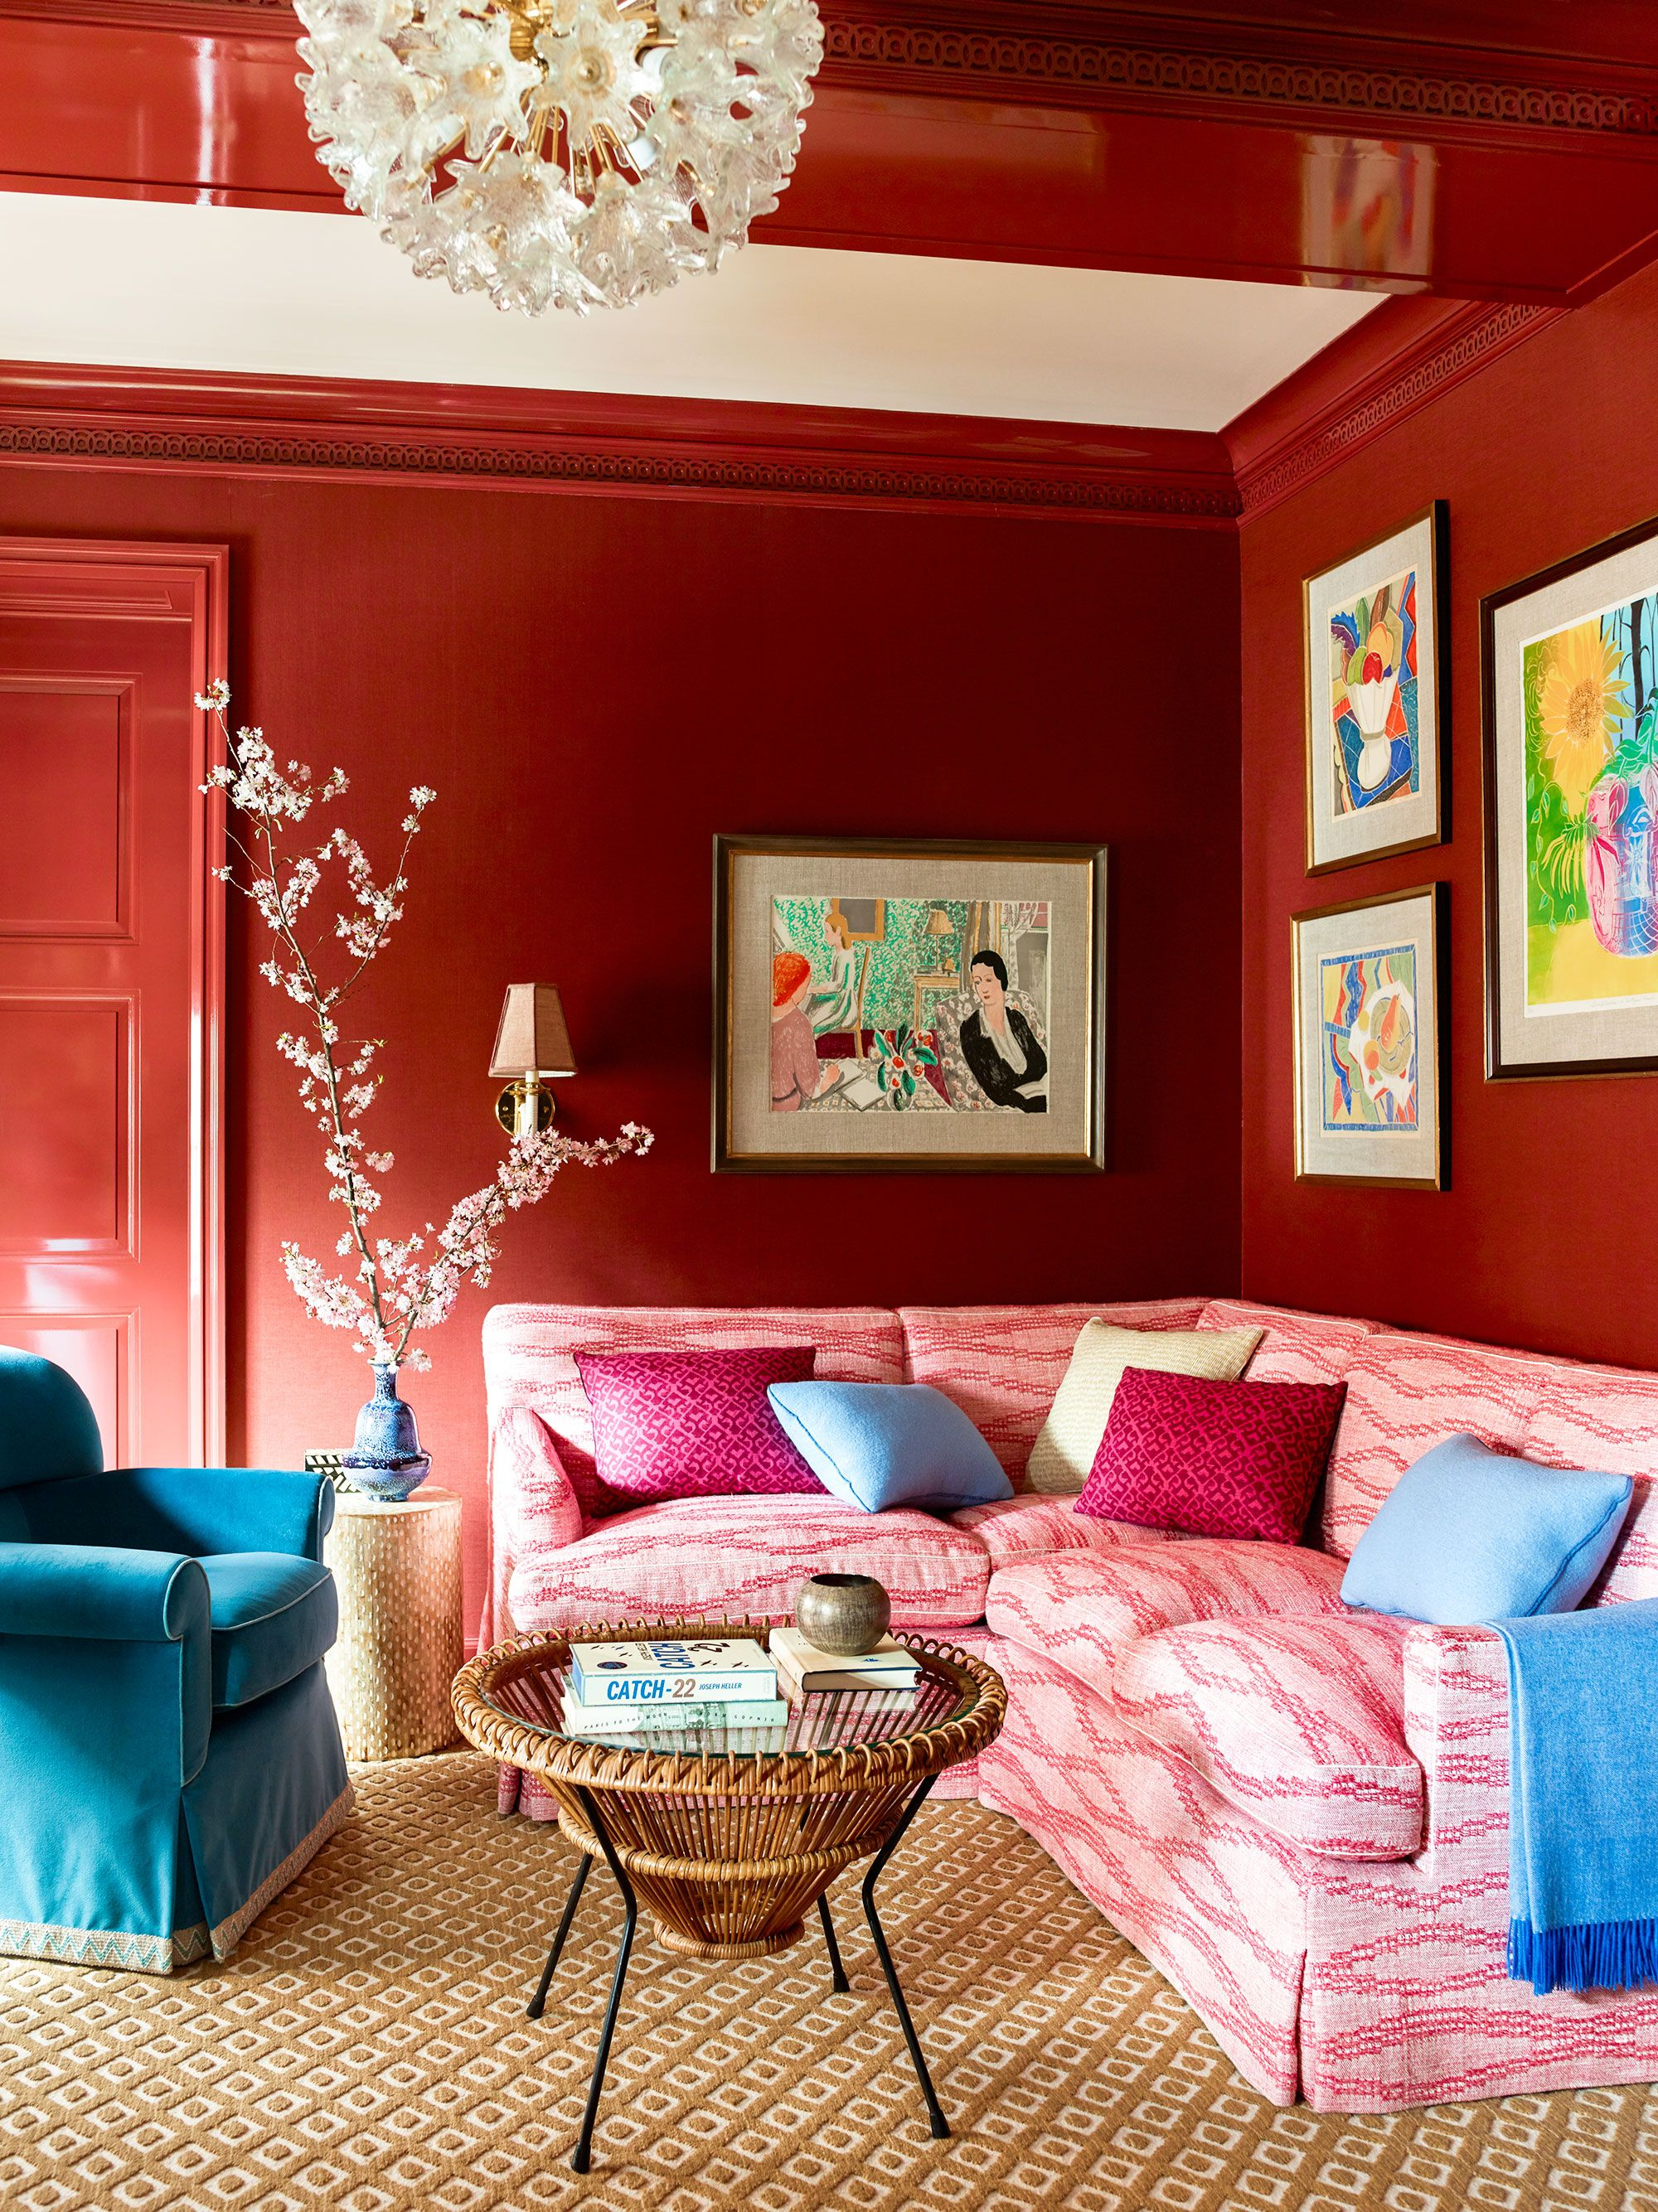 17 Best Small Living Room Ideas - How to Decorate a Small ... on Small Space Small Living Room Ideas  id=70638